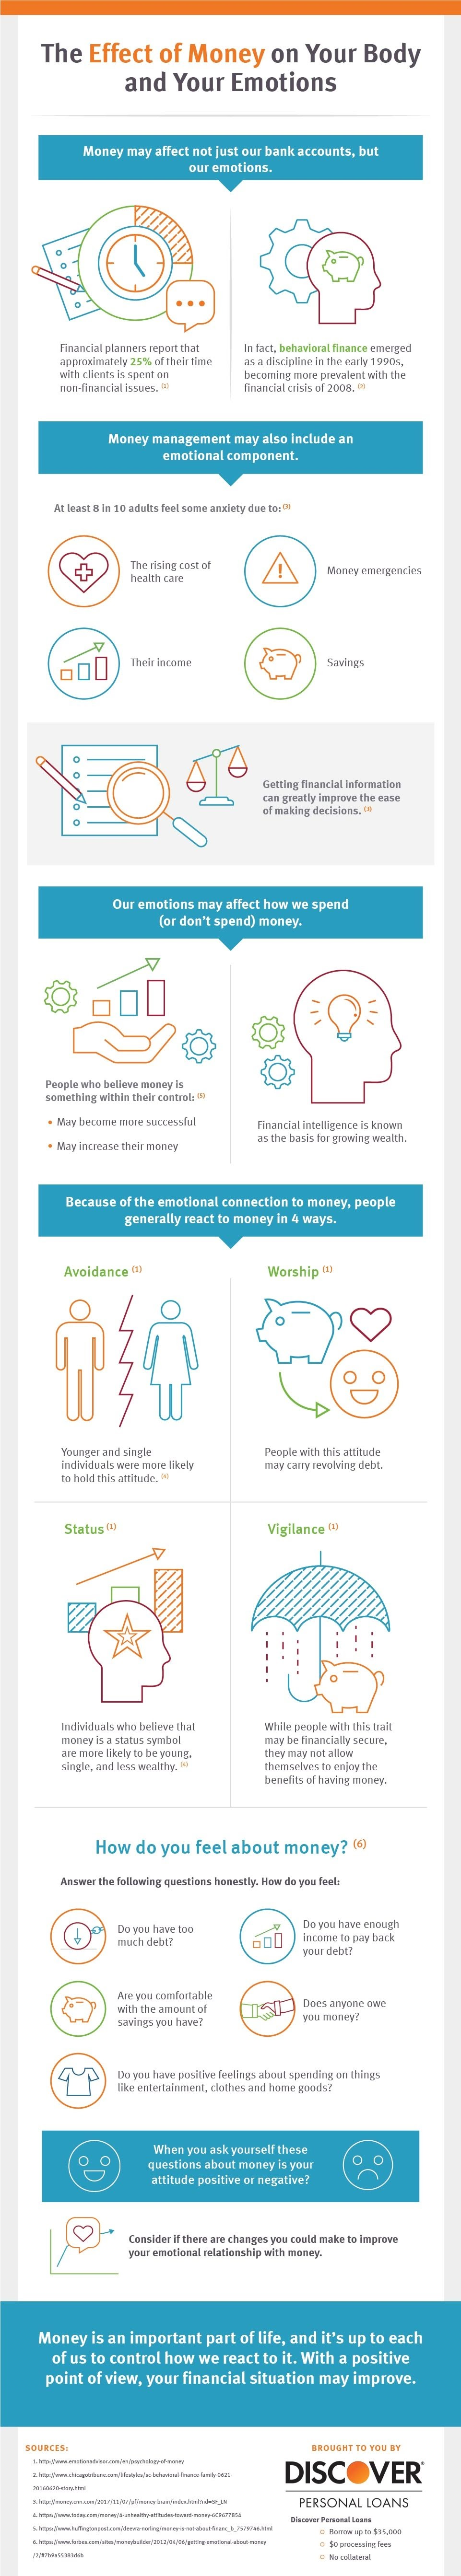 The Effect of Money on Your Body and Your Emotions #infographic